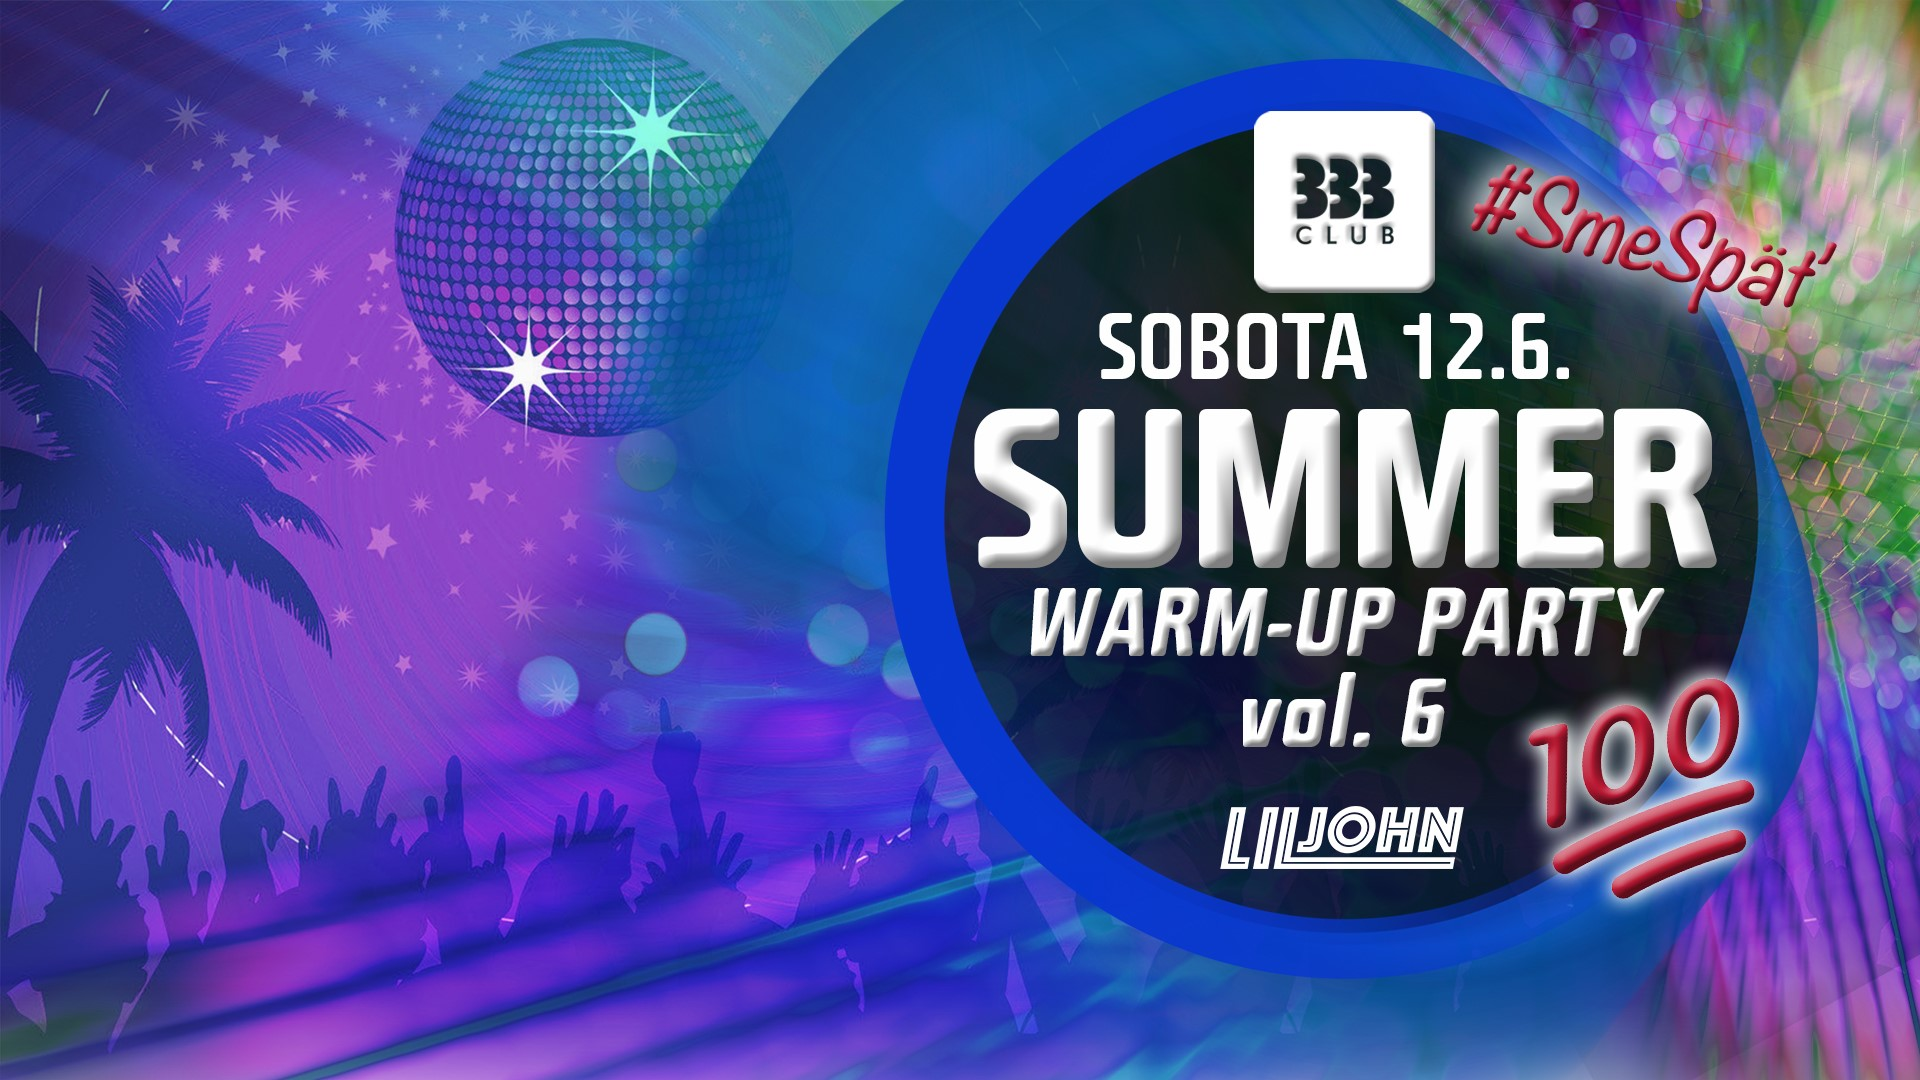 ✪ SUMMER Warm-UP Party vol 6 ✪ 12.6.